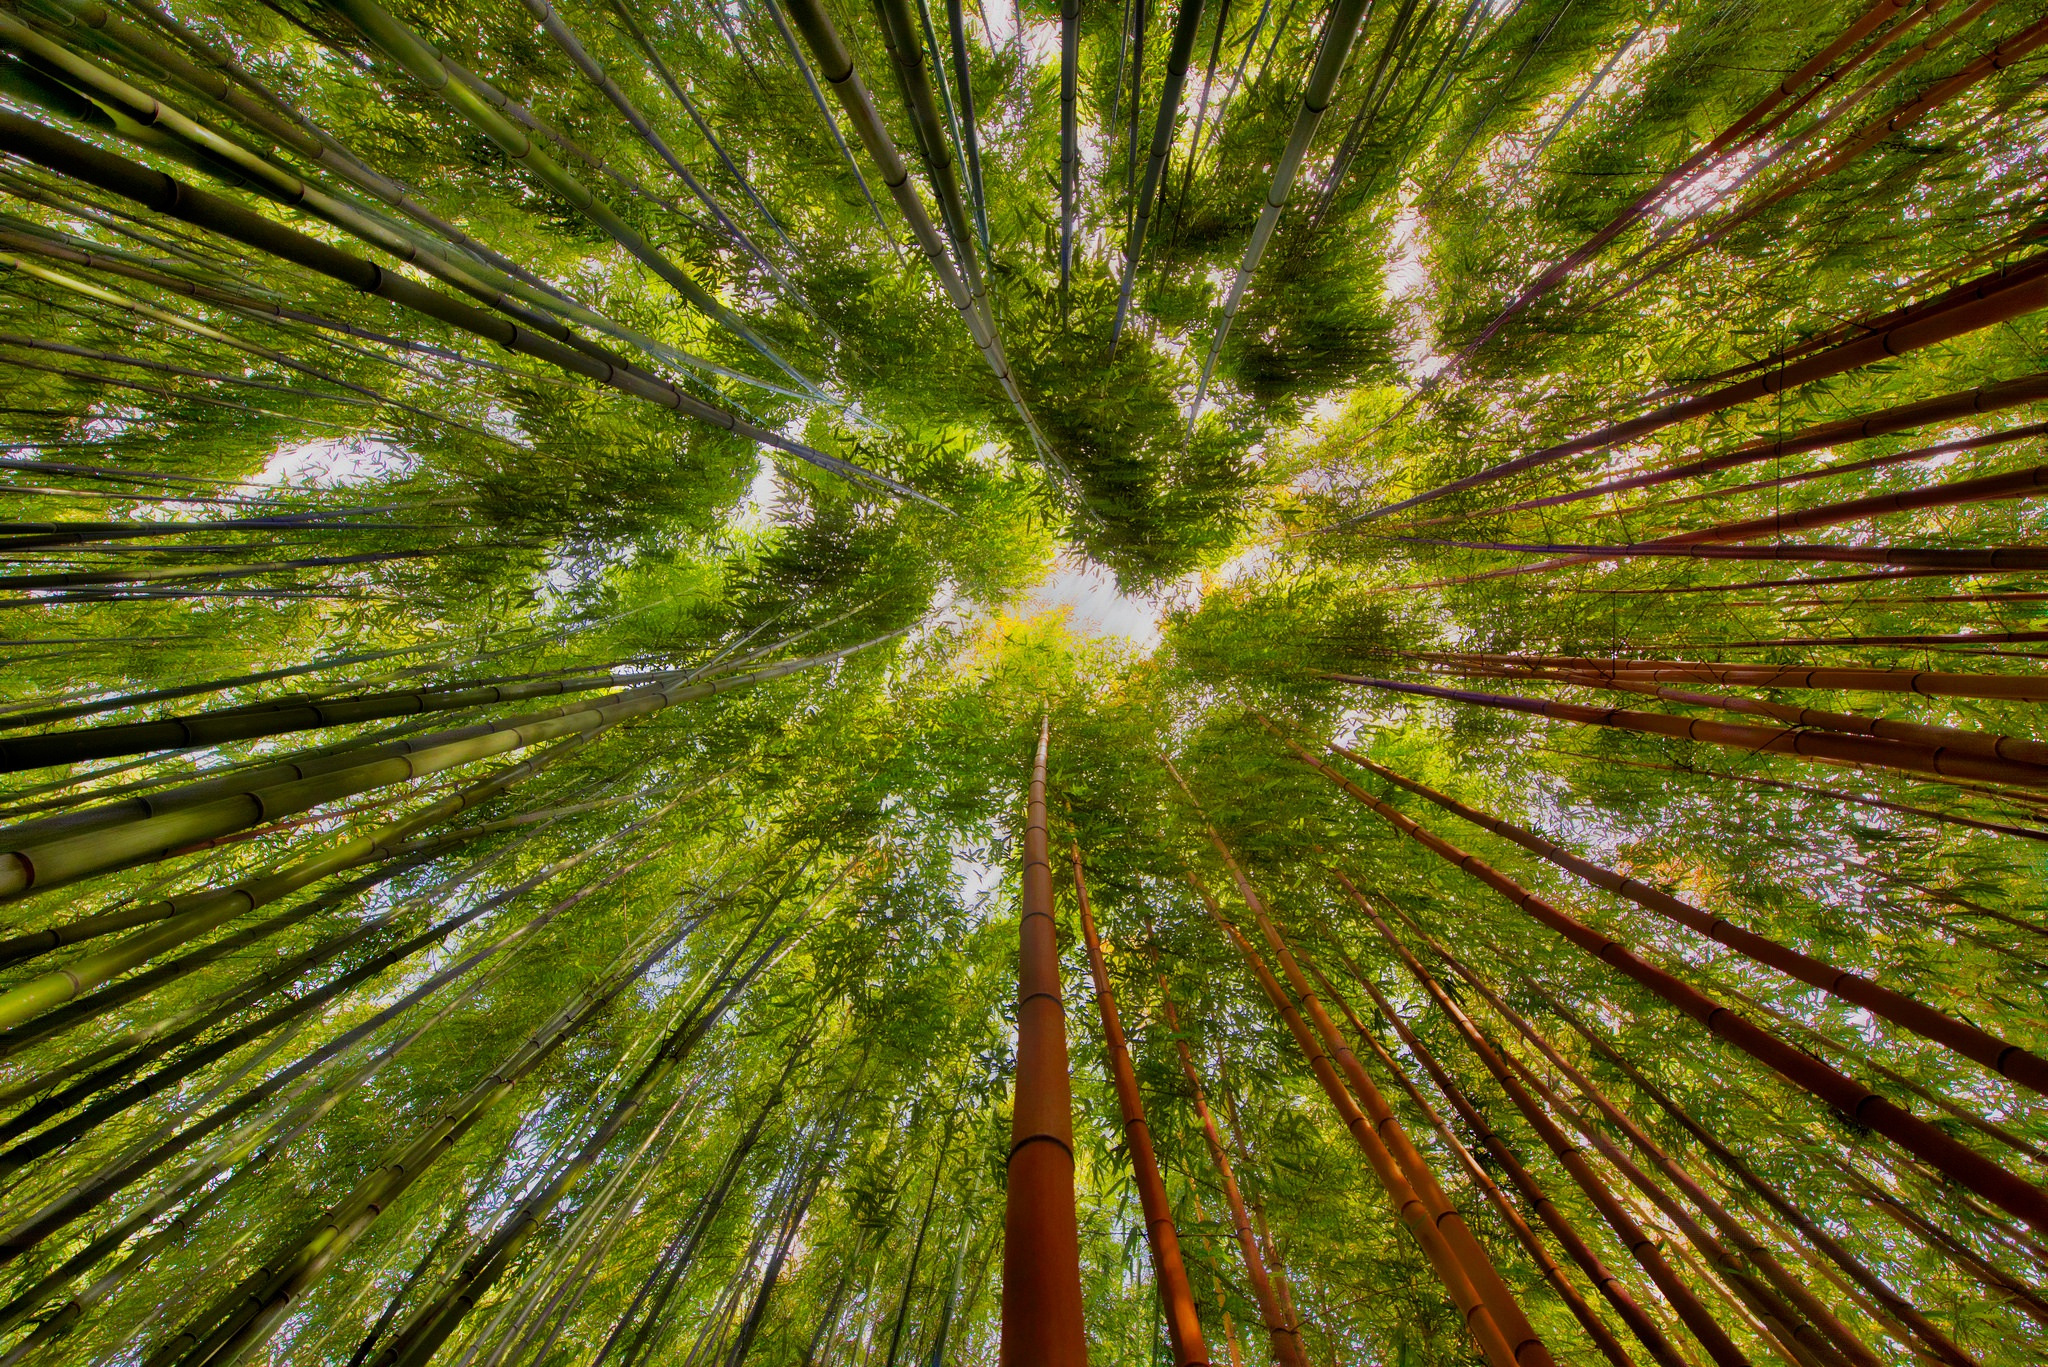 Bamboo Greenery Nature 2048x1367